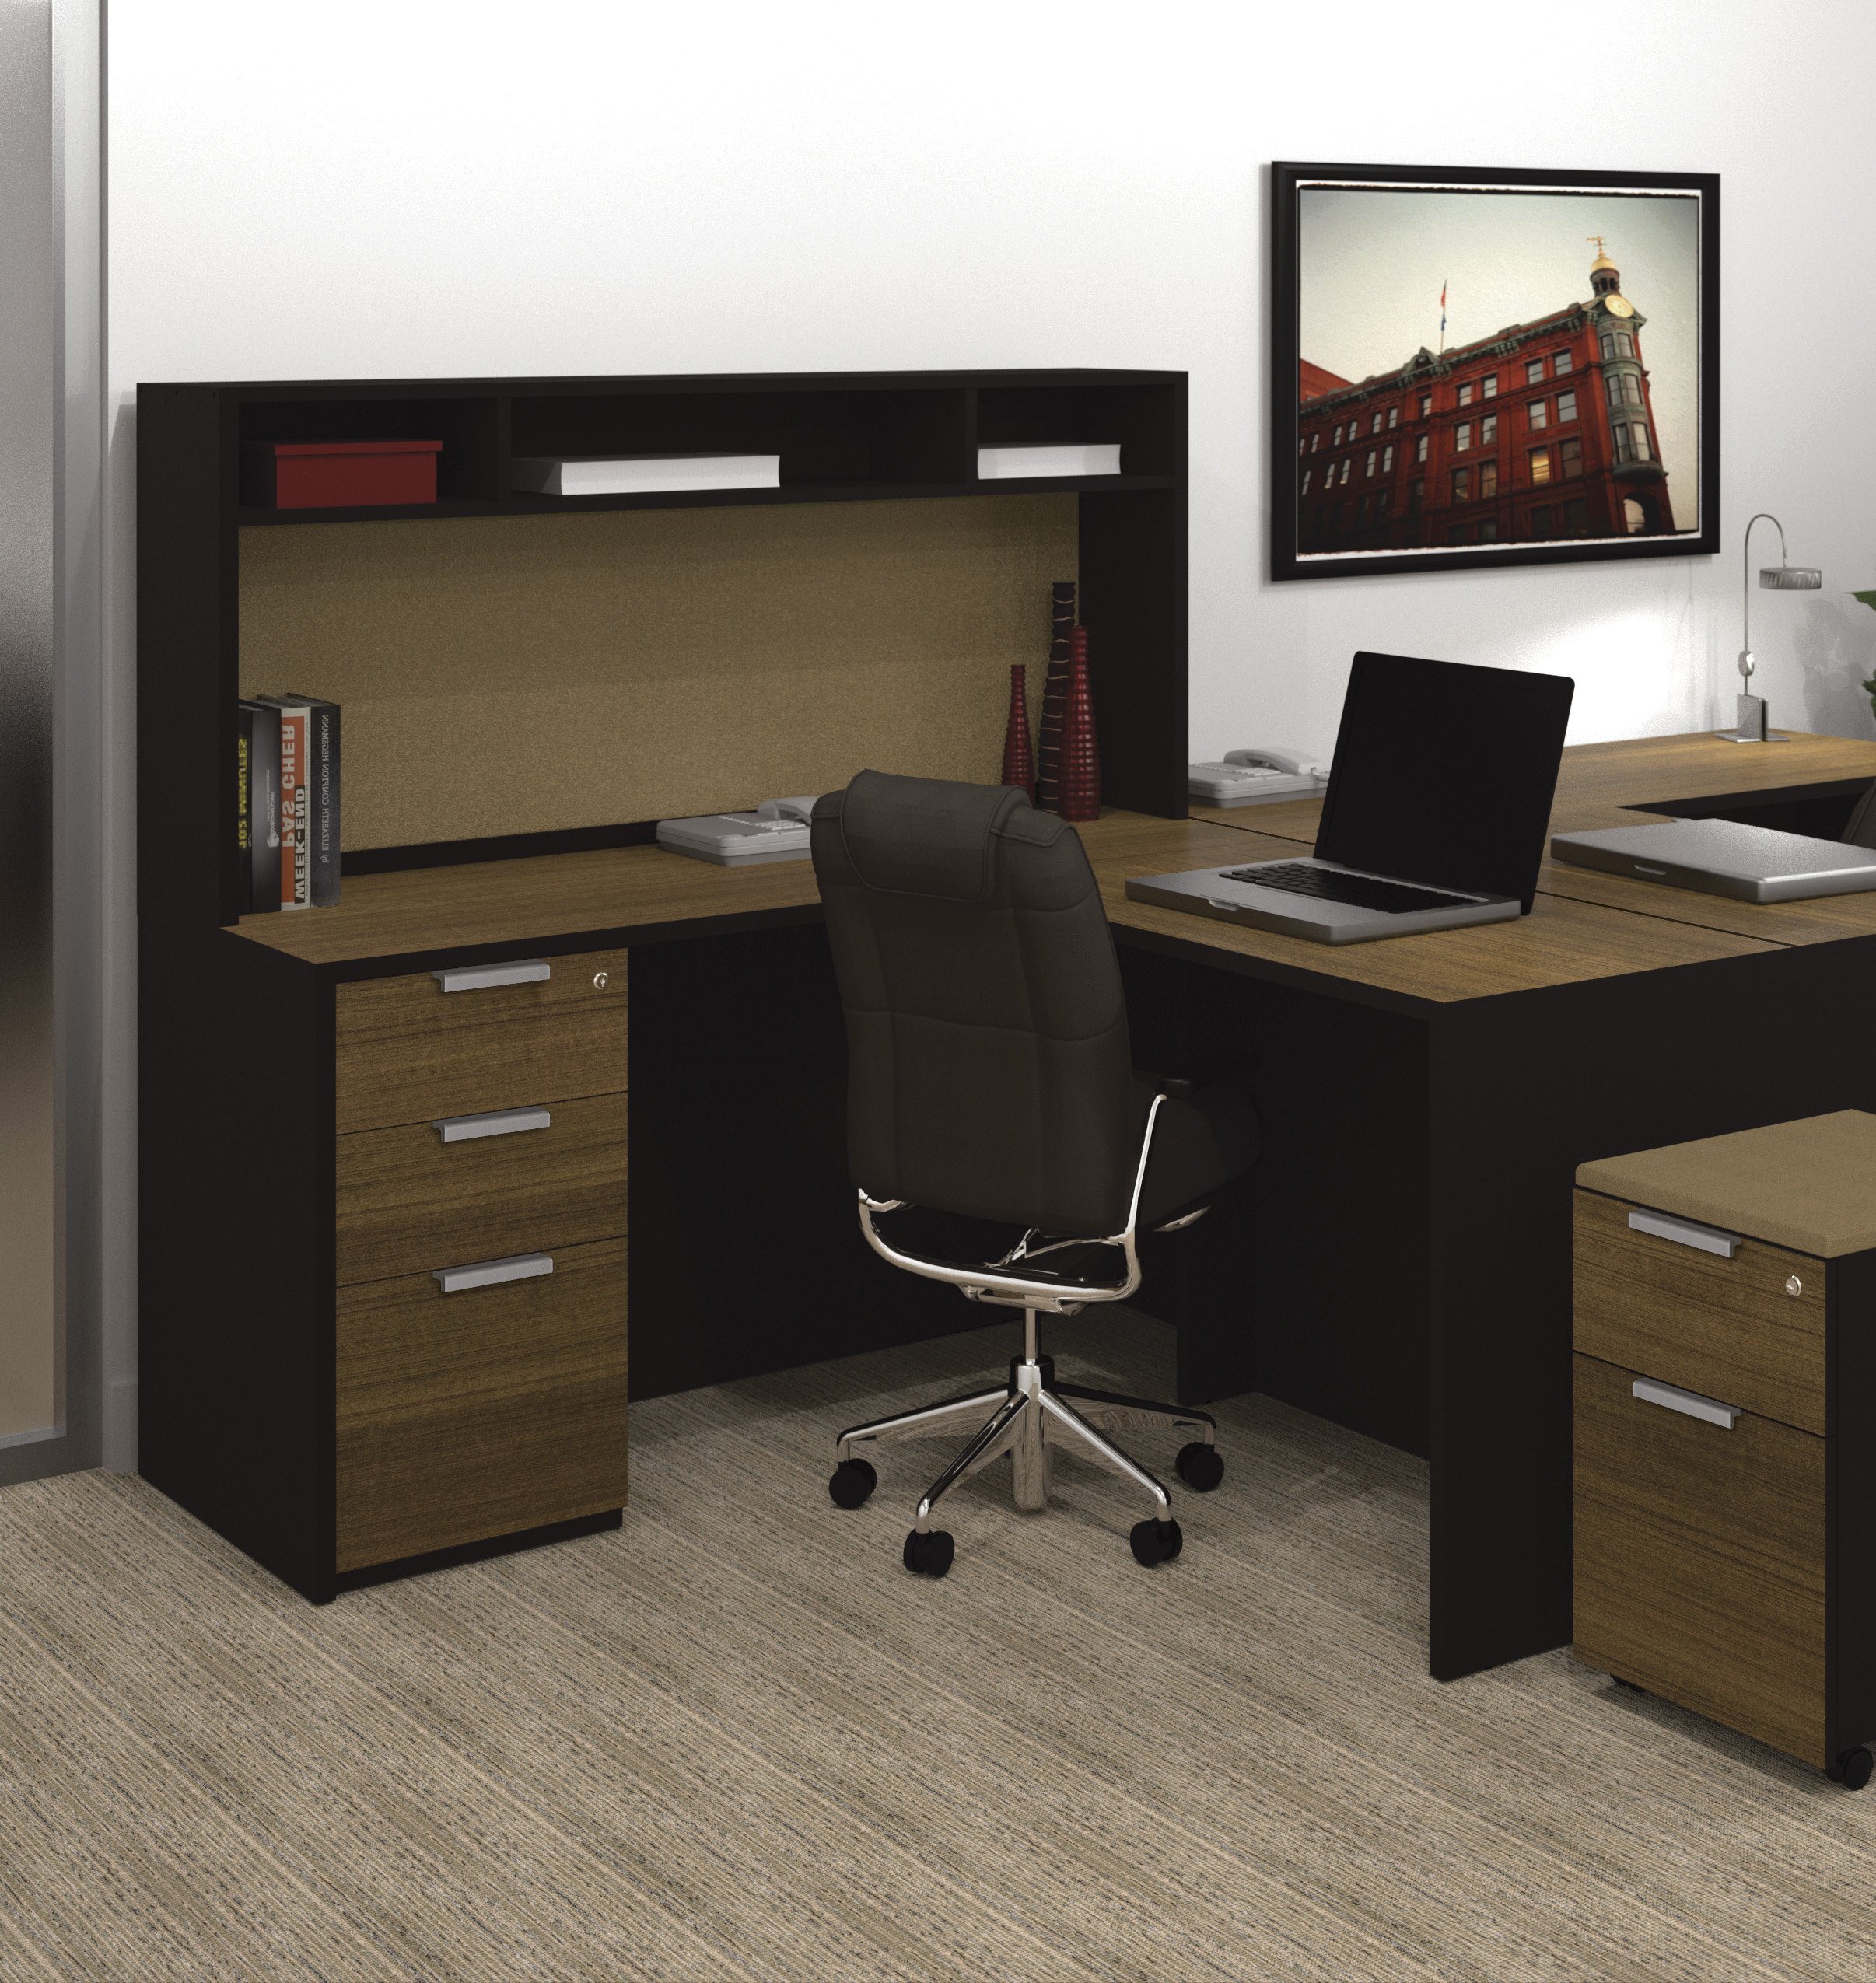 A Home Office Decoration With L Shaped Desk With Hutch And Storage Plus  Computer Set And